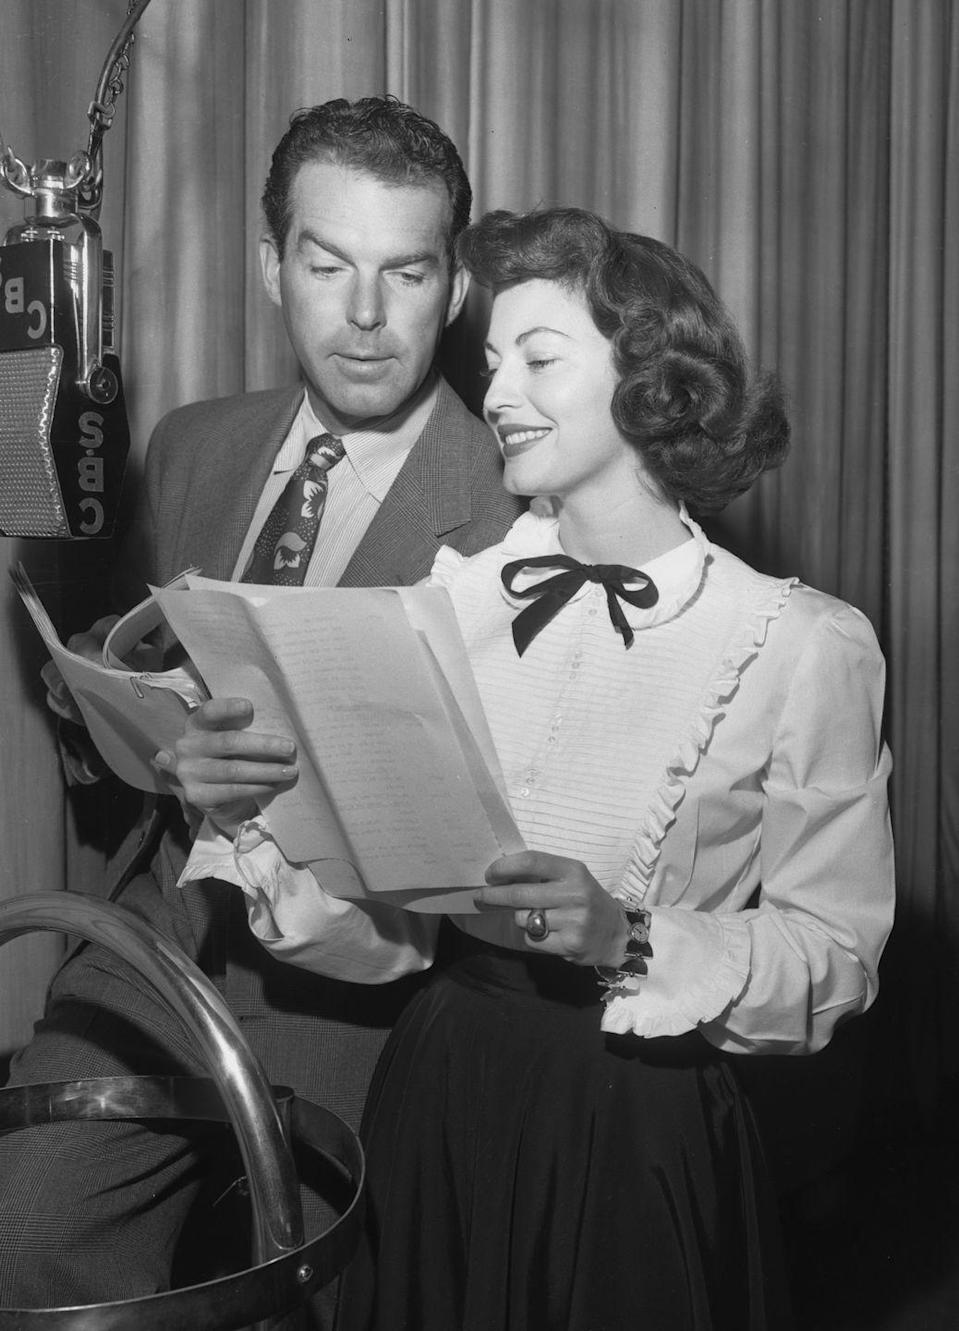 <p>Gardener, who was now working steadily and starred in <em>Singapore</em> and <em>The Huckster</em> in 1947, and actor Fred MacMurray appear together on the CBS program <em>Lux Radio Theater</em>, with Gardner dressed in a ruffled blouse, complete with a charming bowtie neck ribbon.</p>